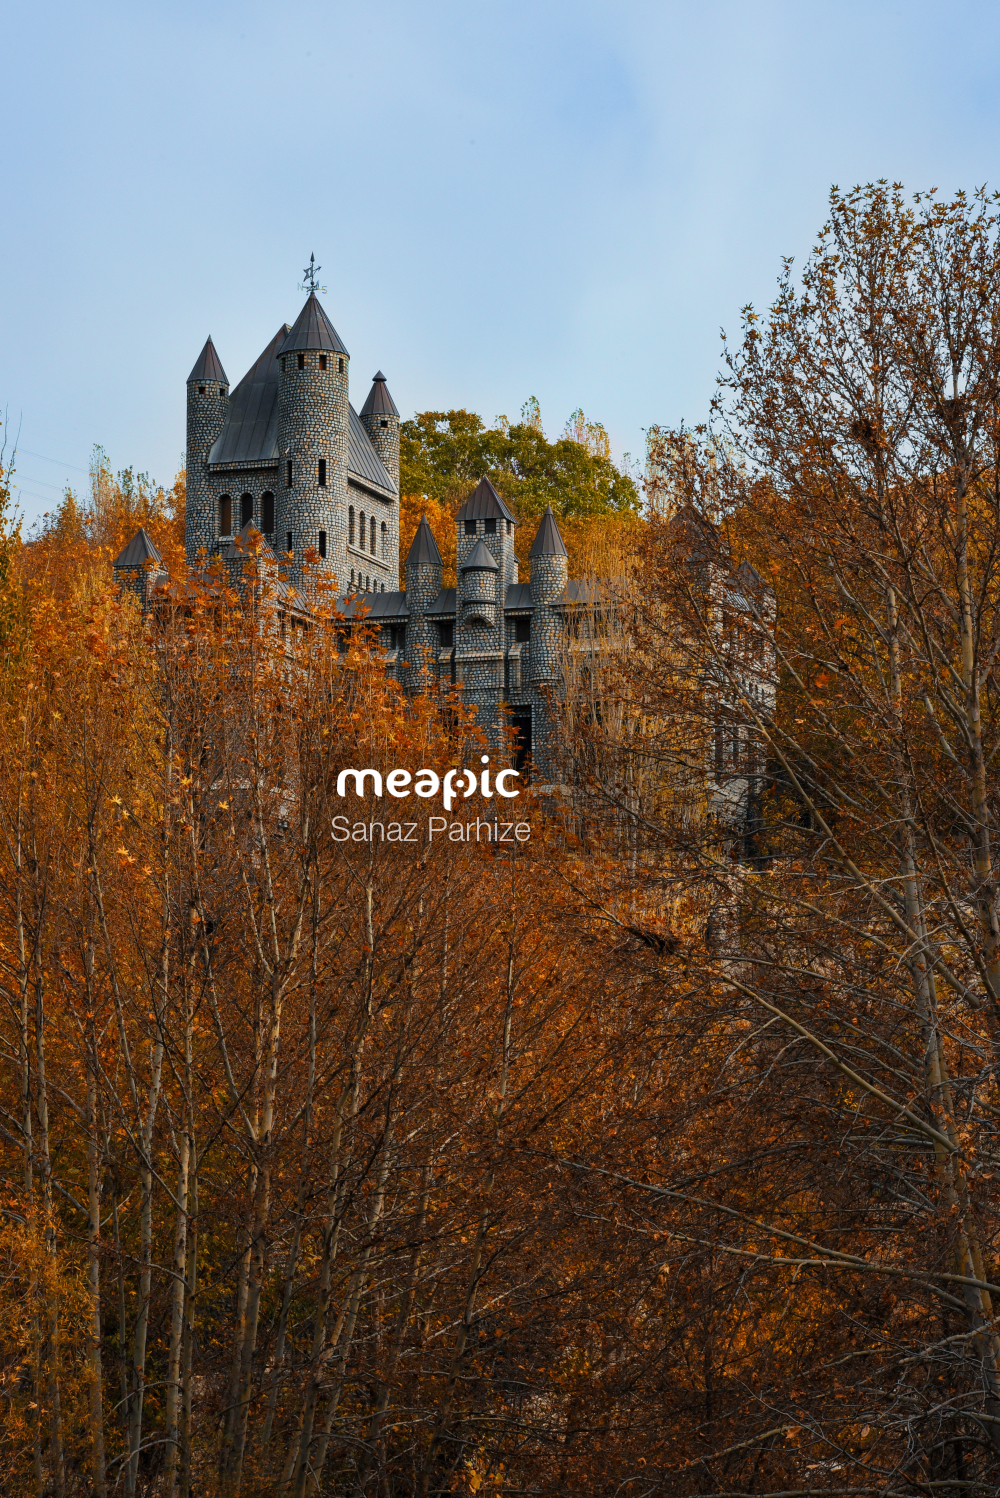 Castle With A Clock In The Middle Of A Forest Stock Photo · Meapic